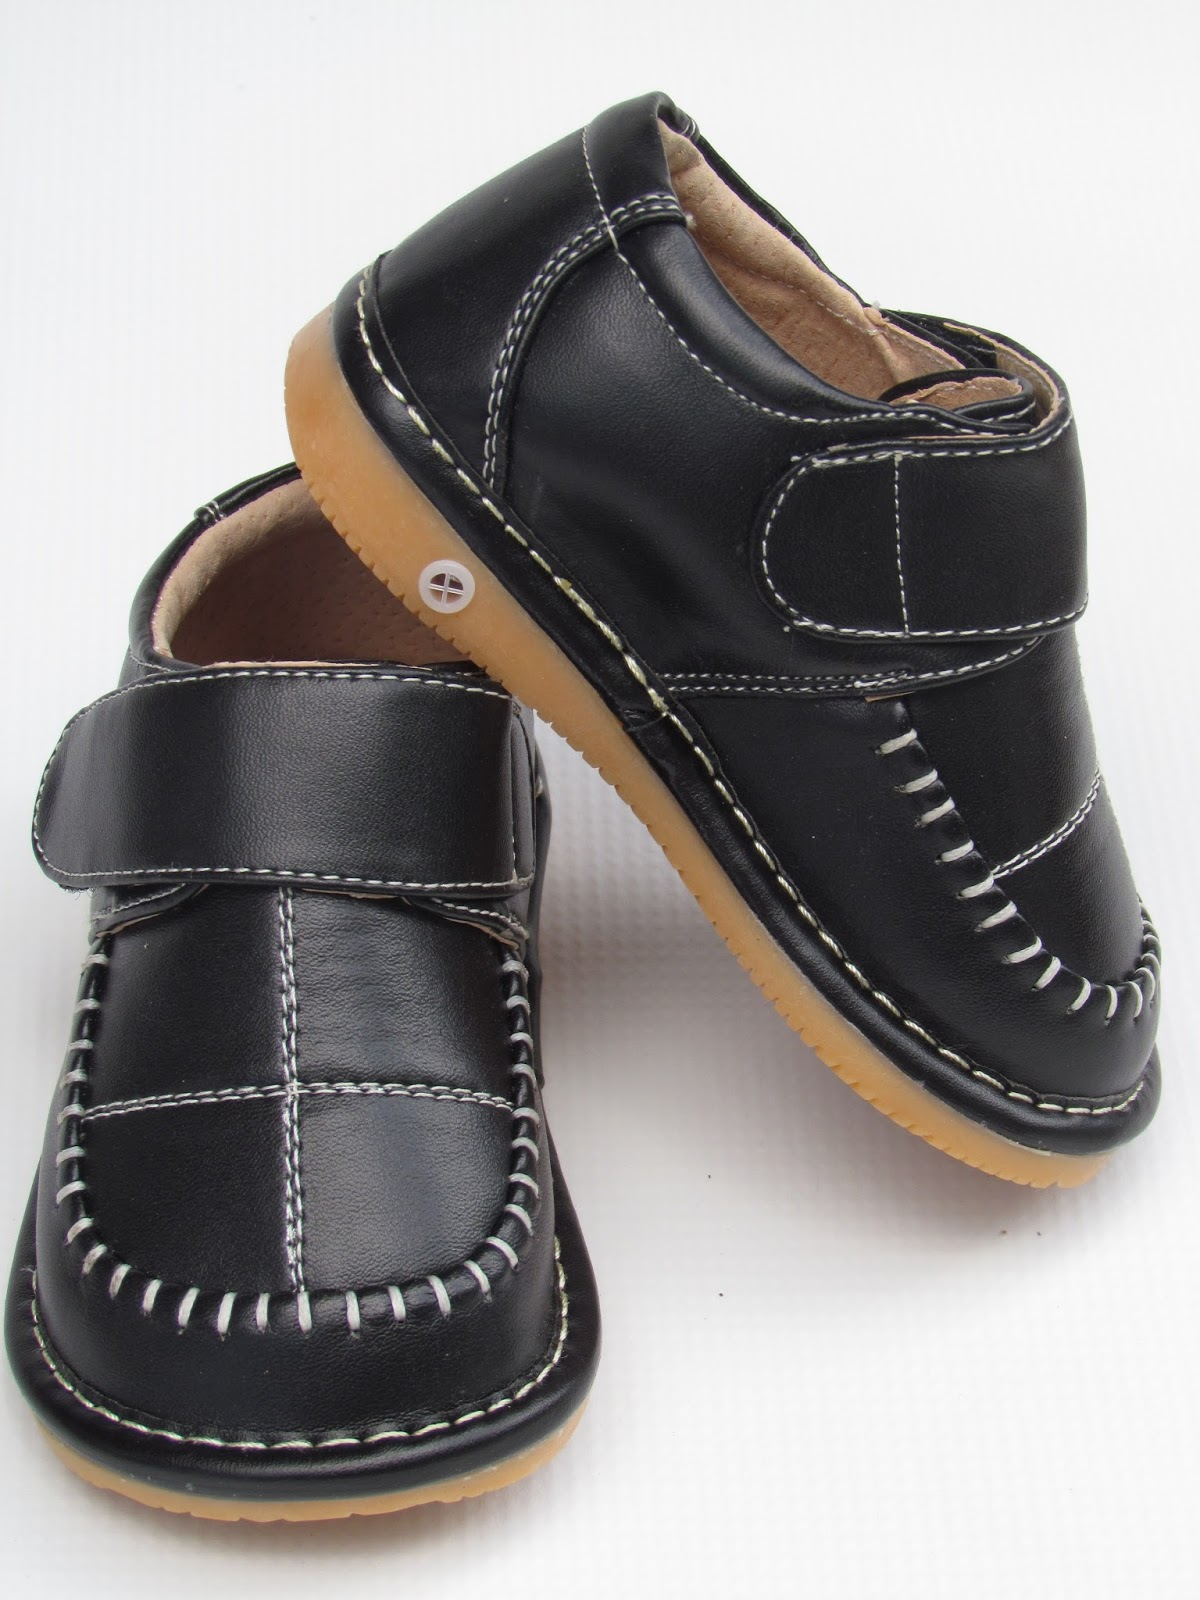 squeaky shoes for tiny tots boys squeaky shoes